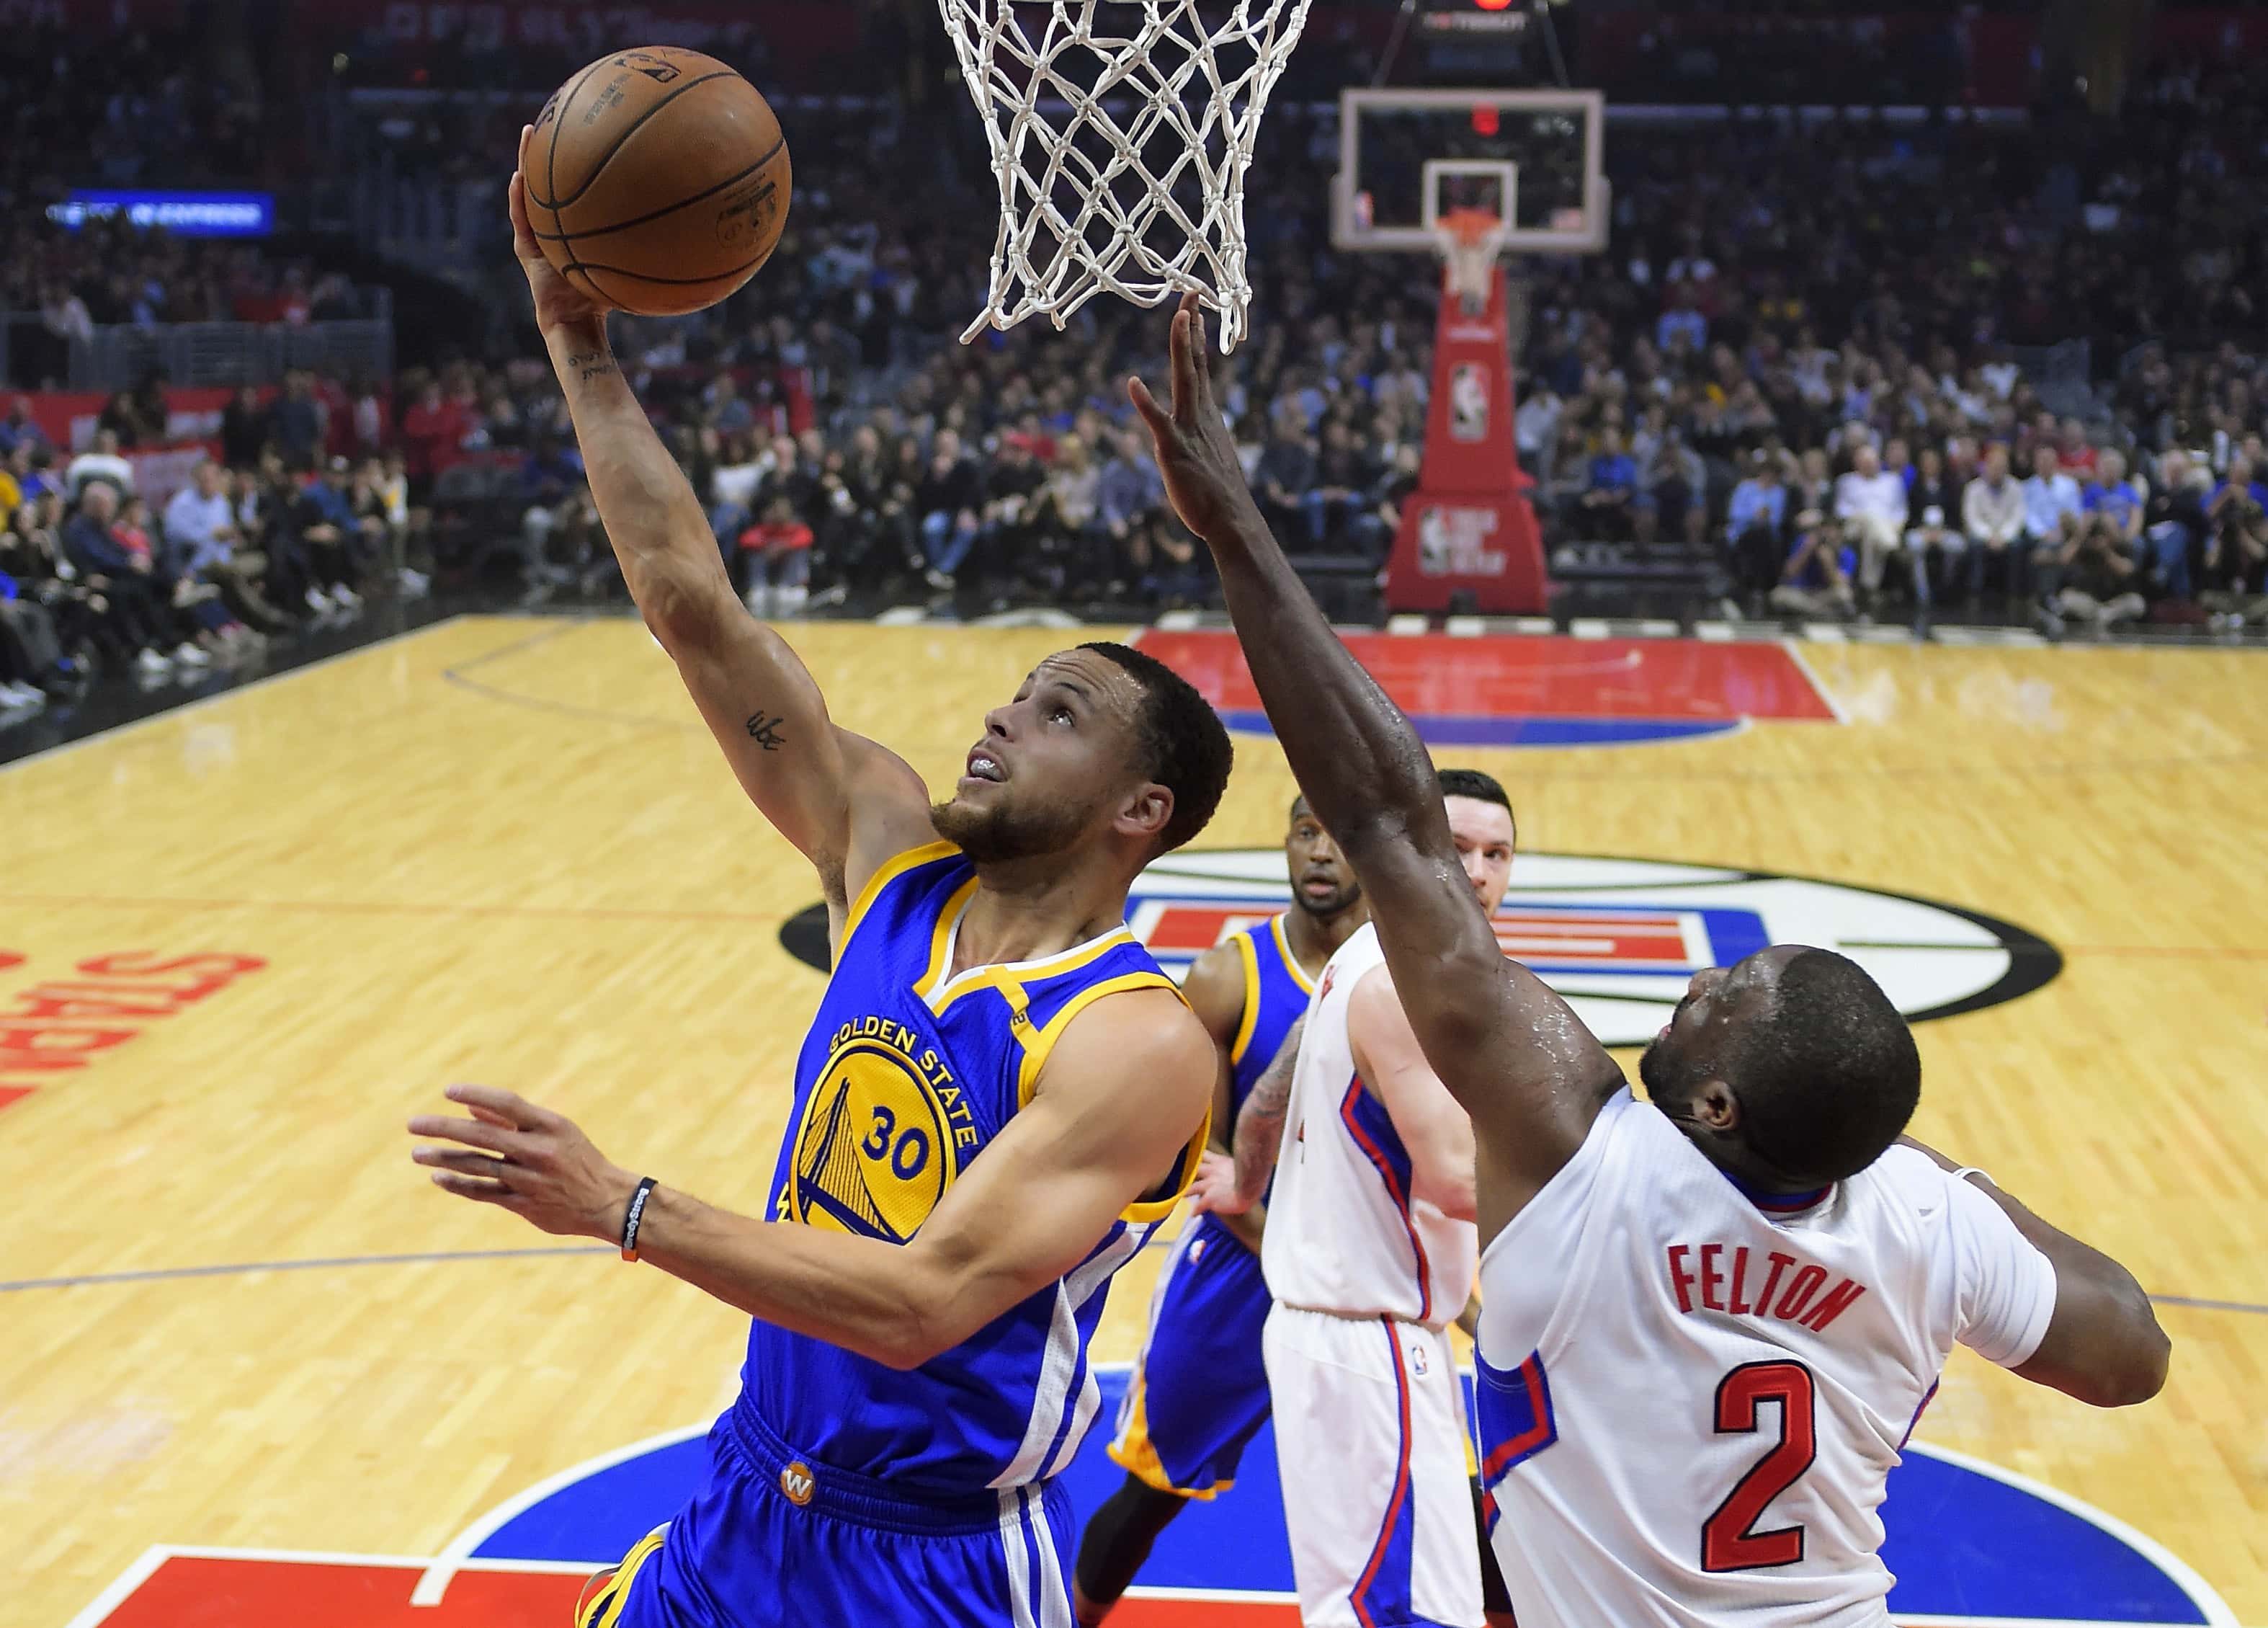 Golden State Warriors guard Stephen Curry, left, shoots as Los Angeles Clippers guard Raymond Felton defends during the first half of an NBA basketball game, Thursday, Feb. 2, 2017, in Los Angeles. (AP Photo/Mark J. Terrill)